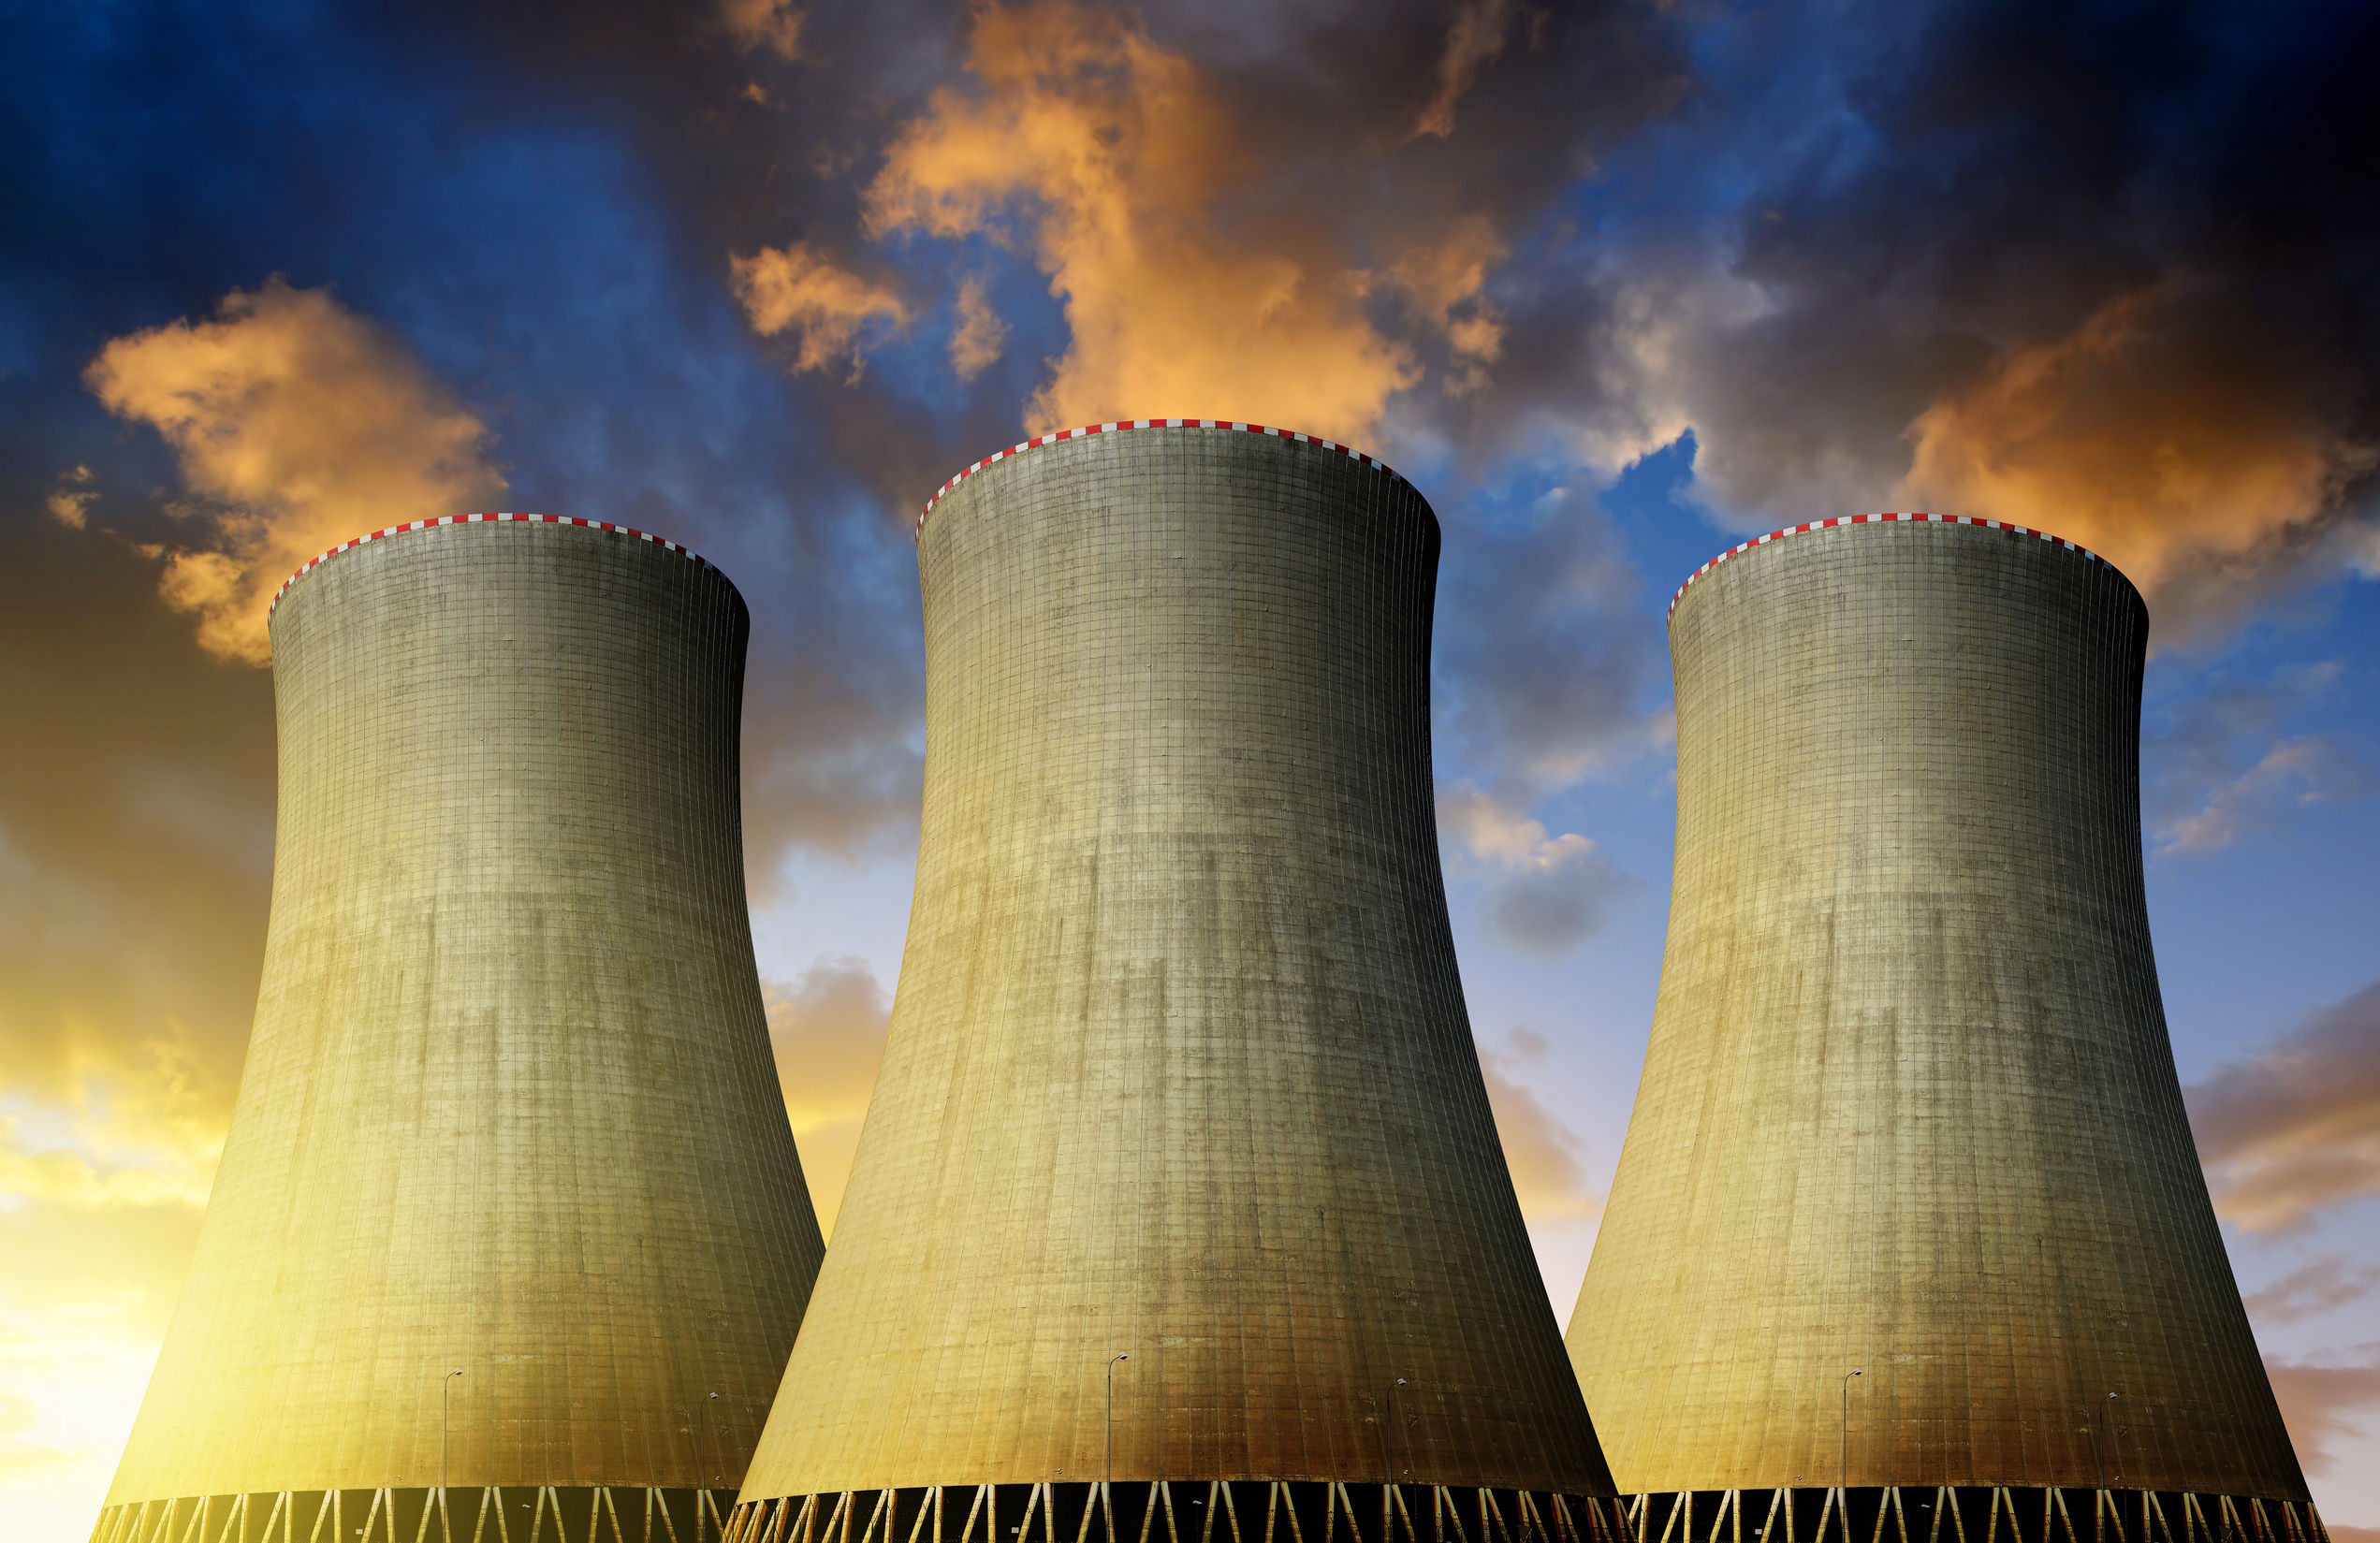 What is the best alternative to coal?